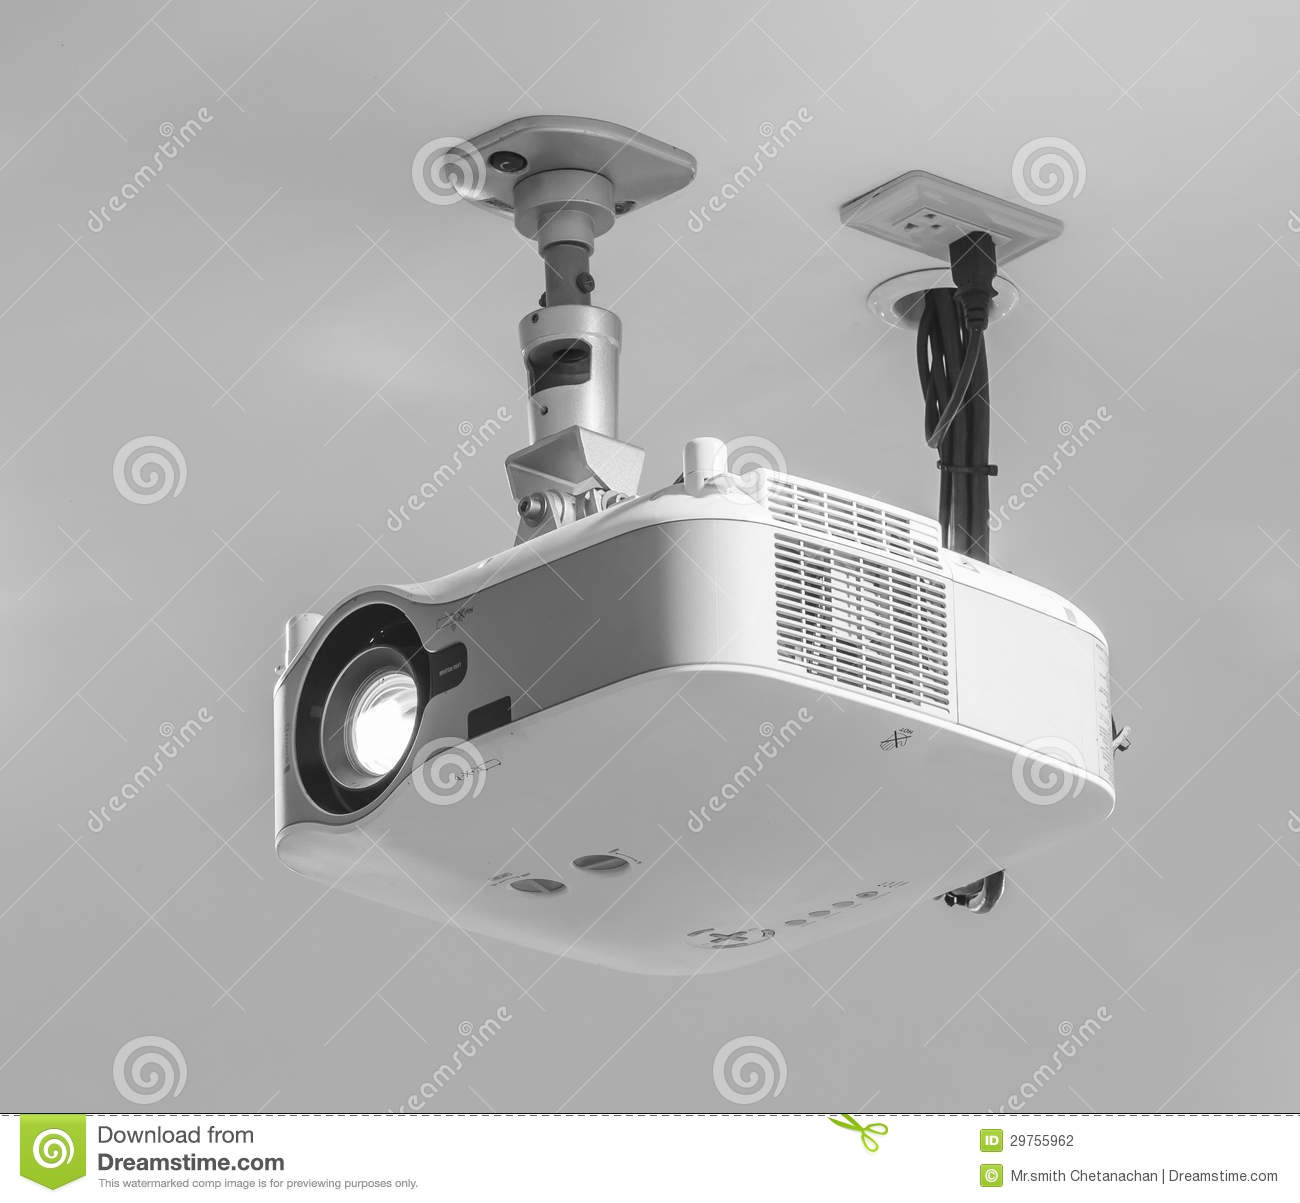 Projector stock photo. Image of home, light, movie